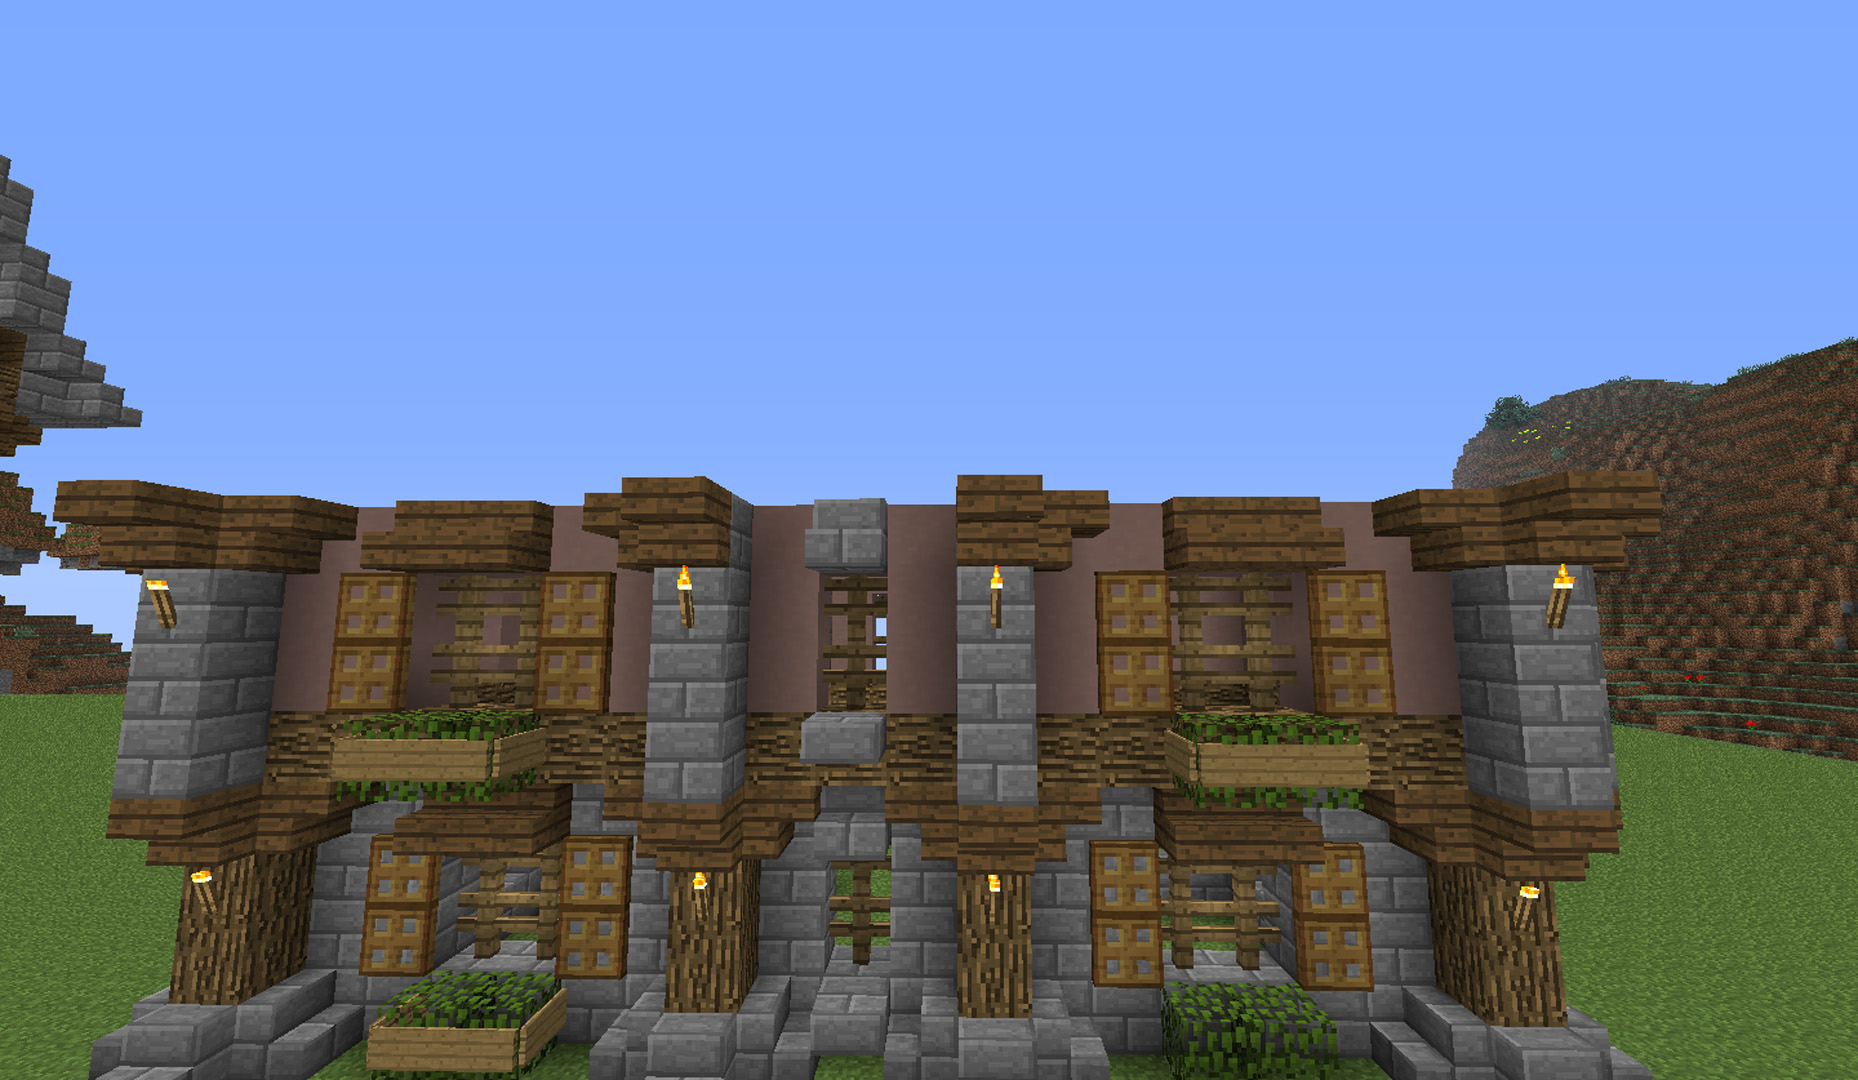 Large Country House Minecraft Build Tutorial - Bc-gb